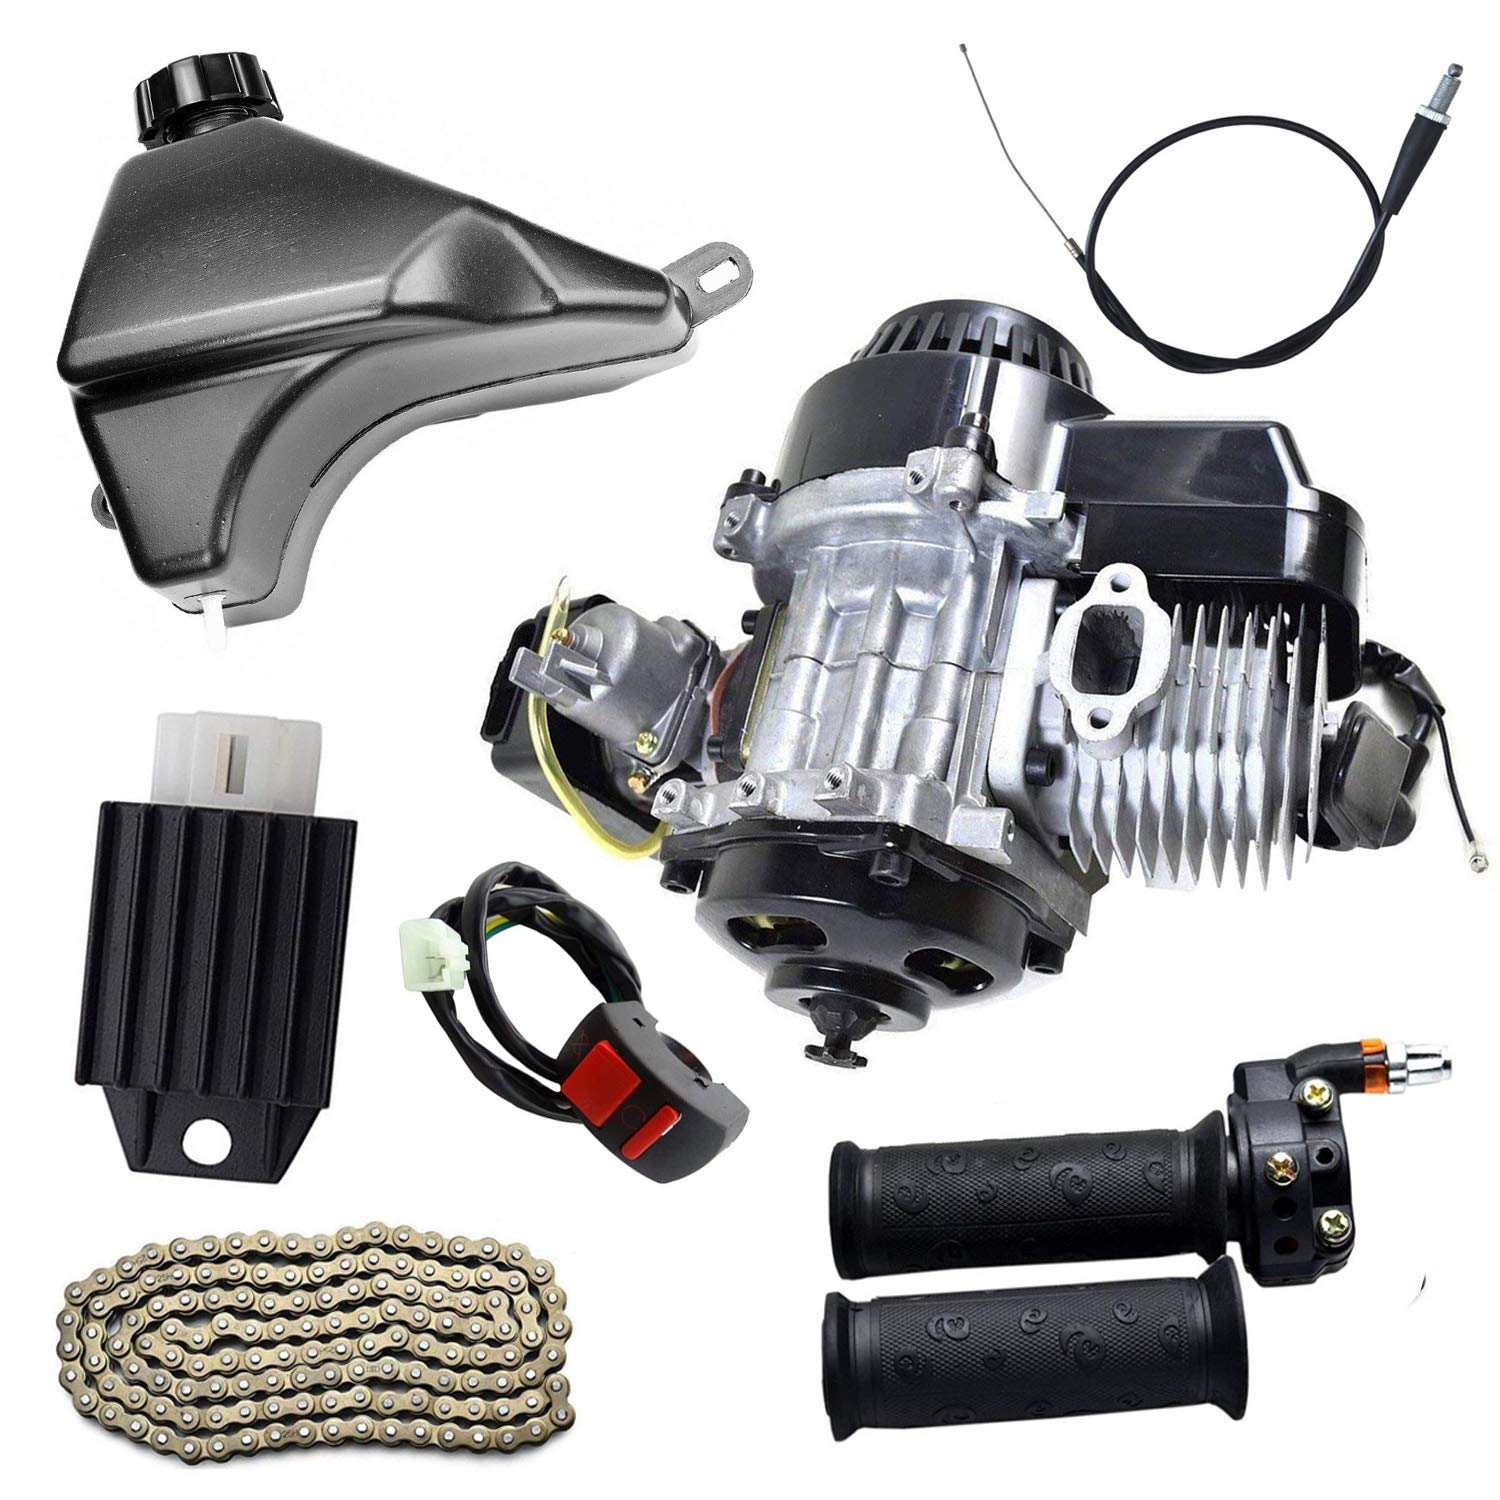 TDPRO 47cc 49cc 2-Stroke Engine Motor /& Handlebar /& Chain /& Throttle Cable /& Switch Kit for Mini Pocket Scooter Dirt Bikes ATV Quad